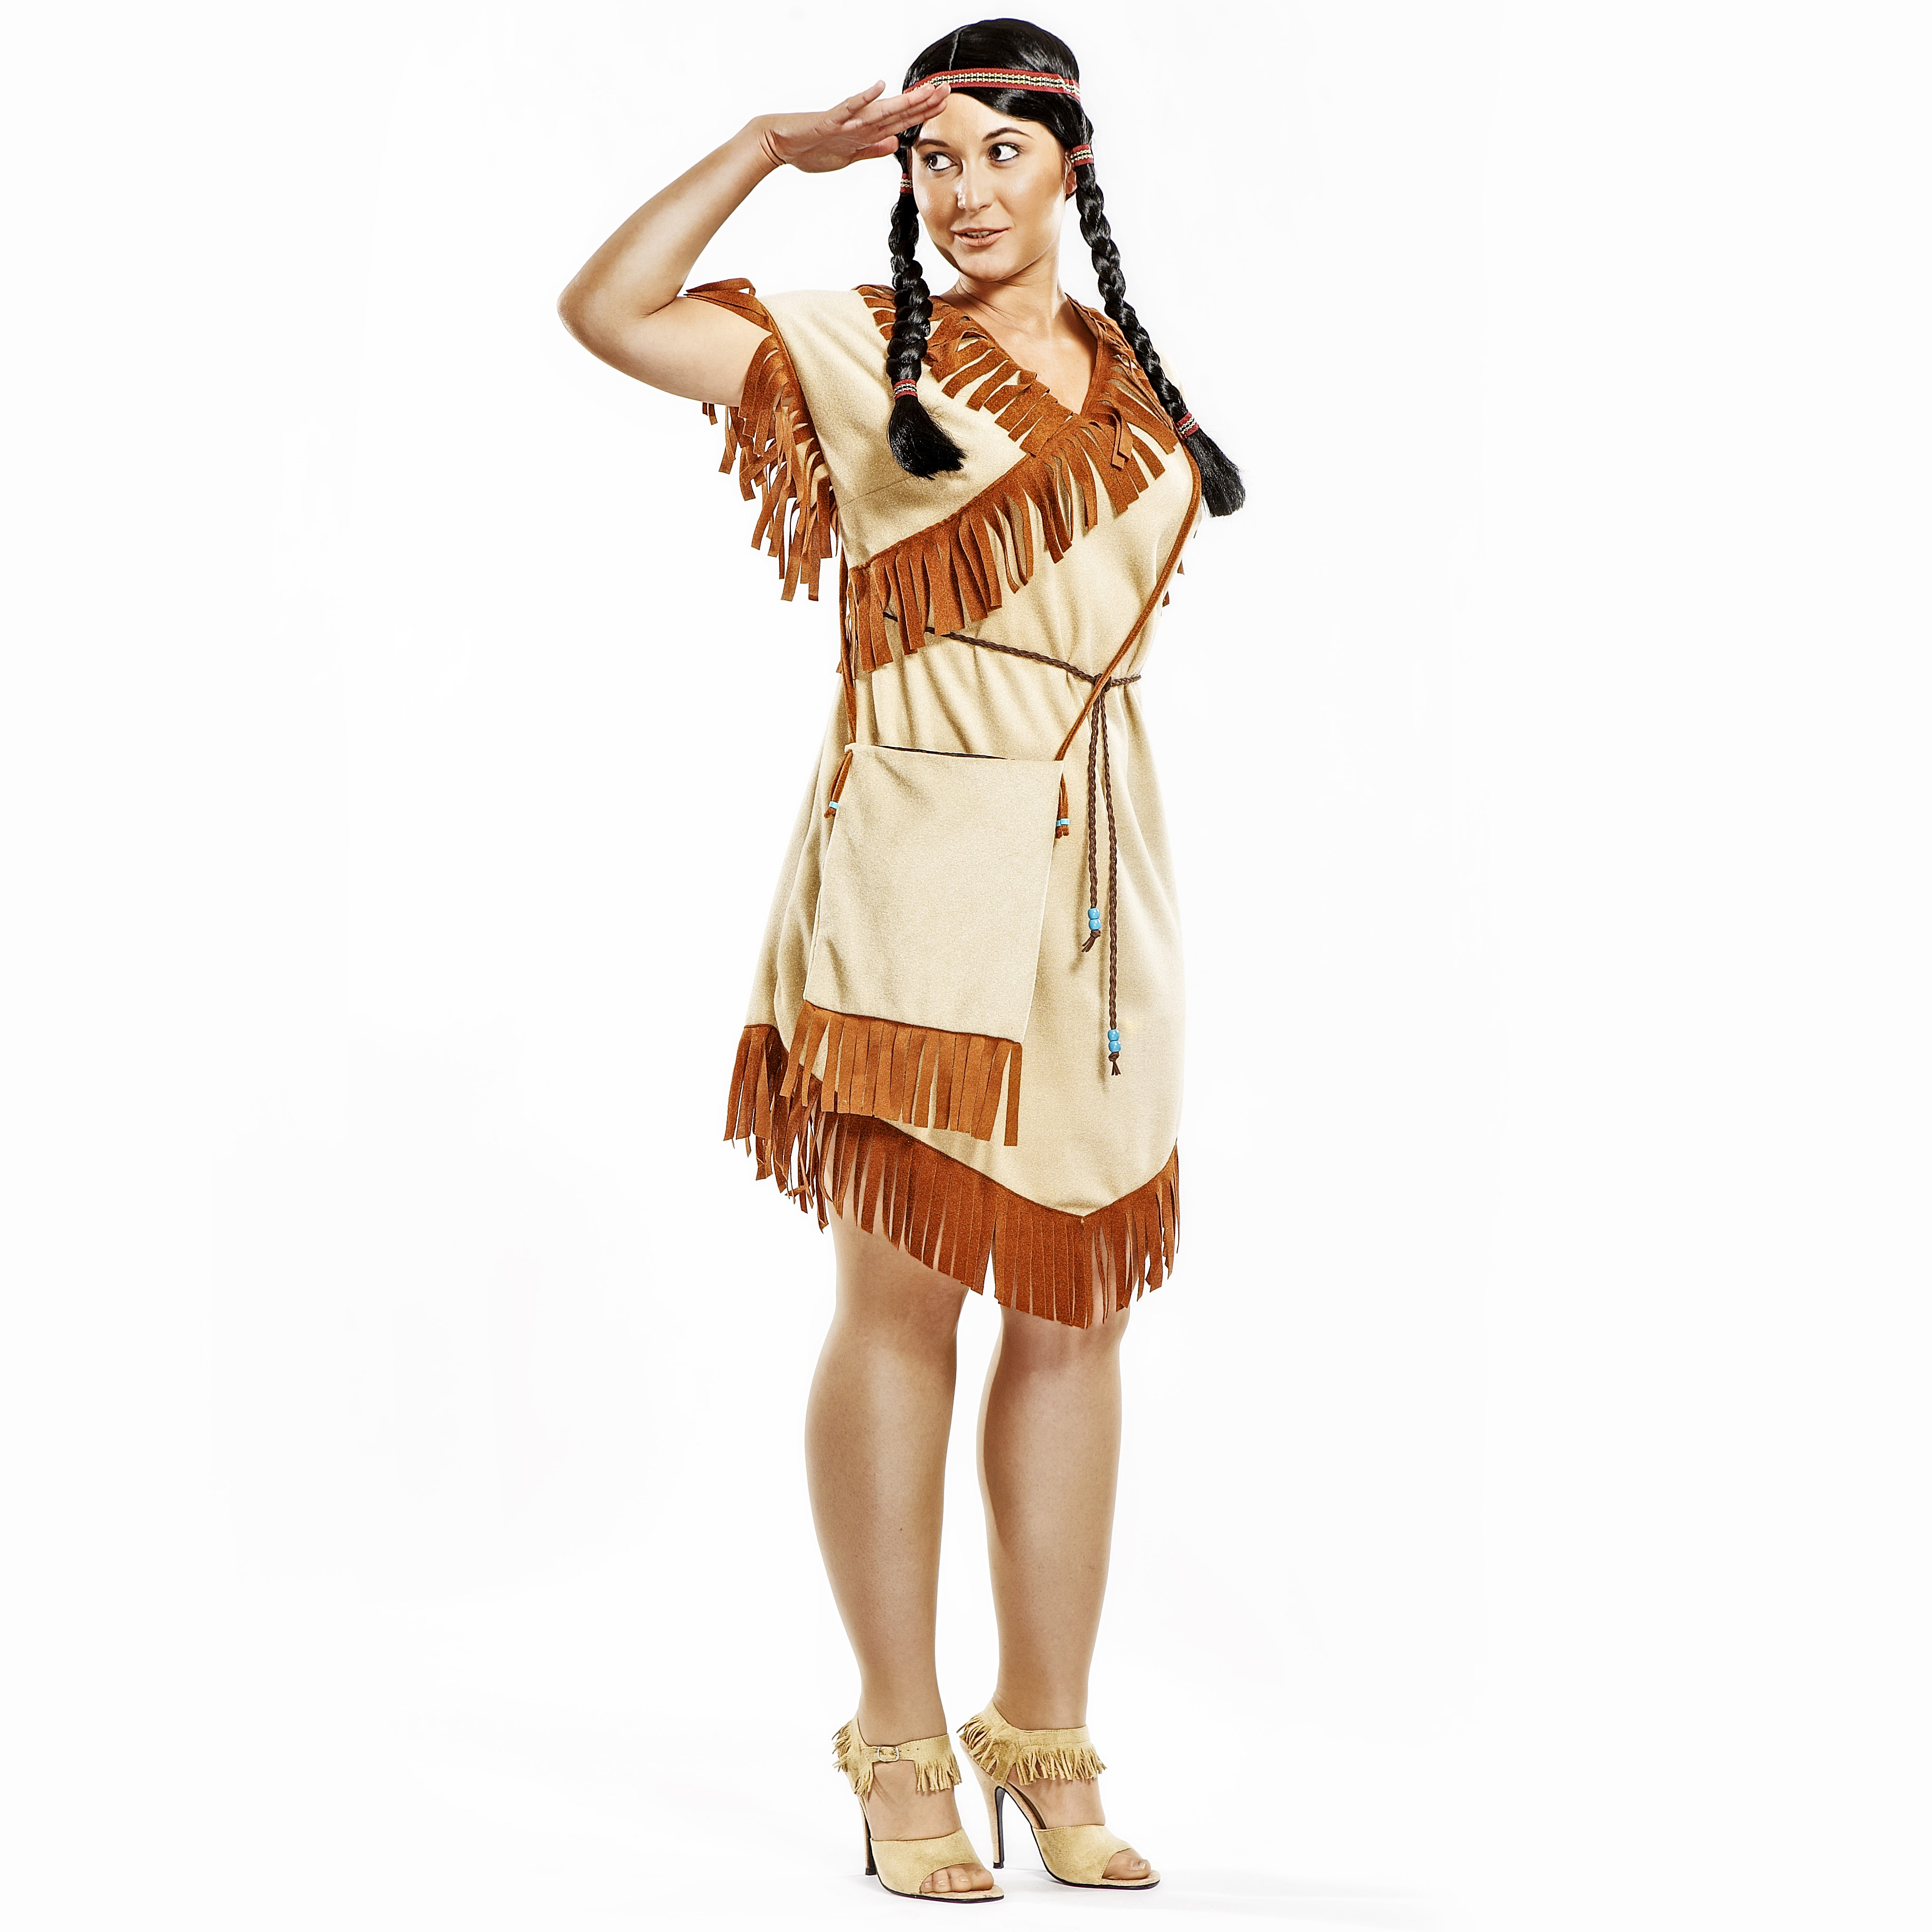 the gallery for pocahontas john smith costume. Black Bedroom Furniture Sets. Home Design Ideas